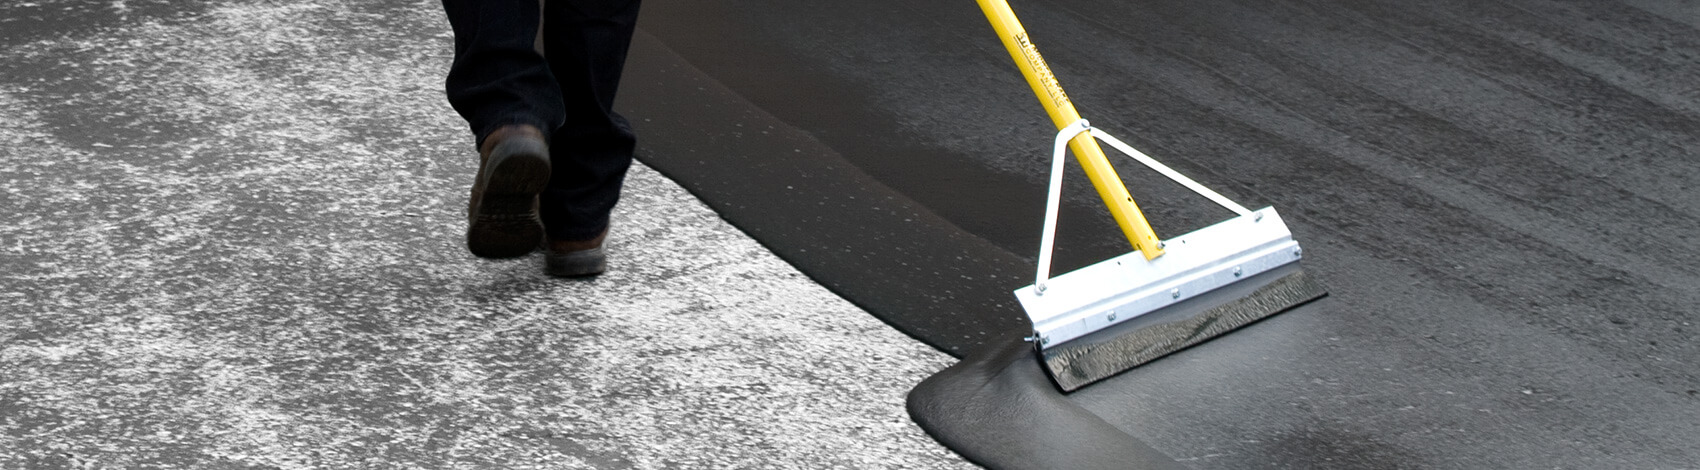 Asphalt sealer applied by squeegee to driveway